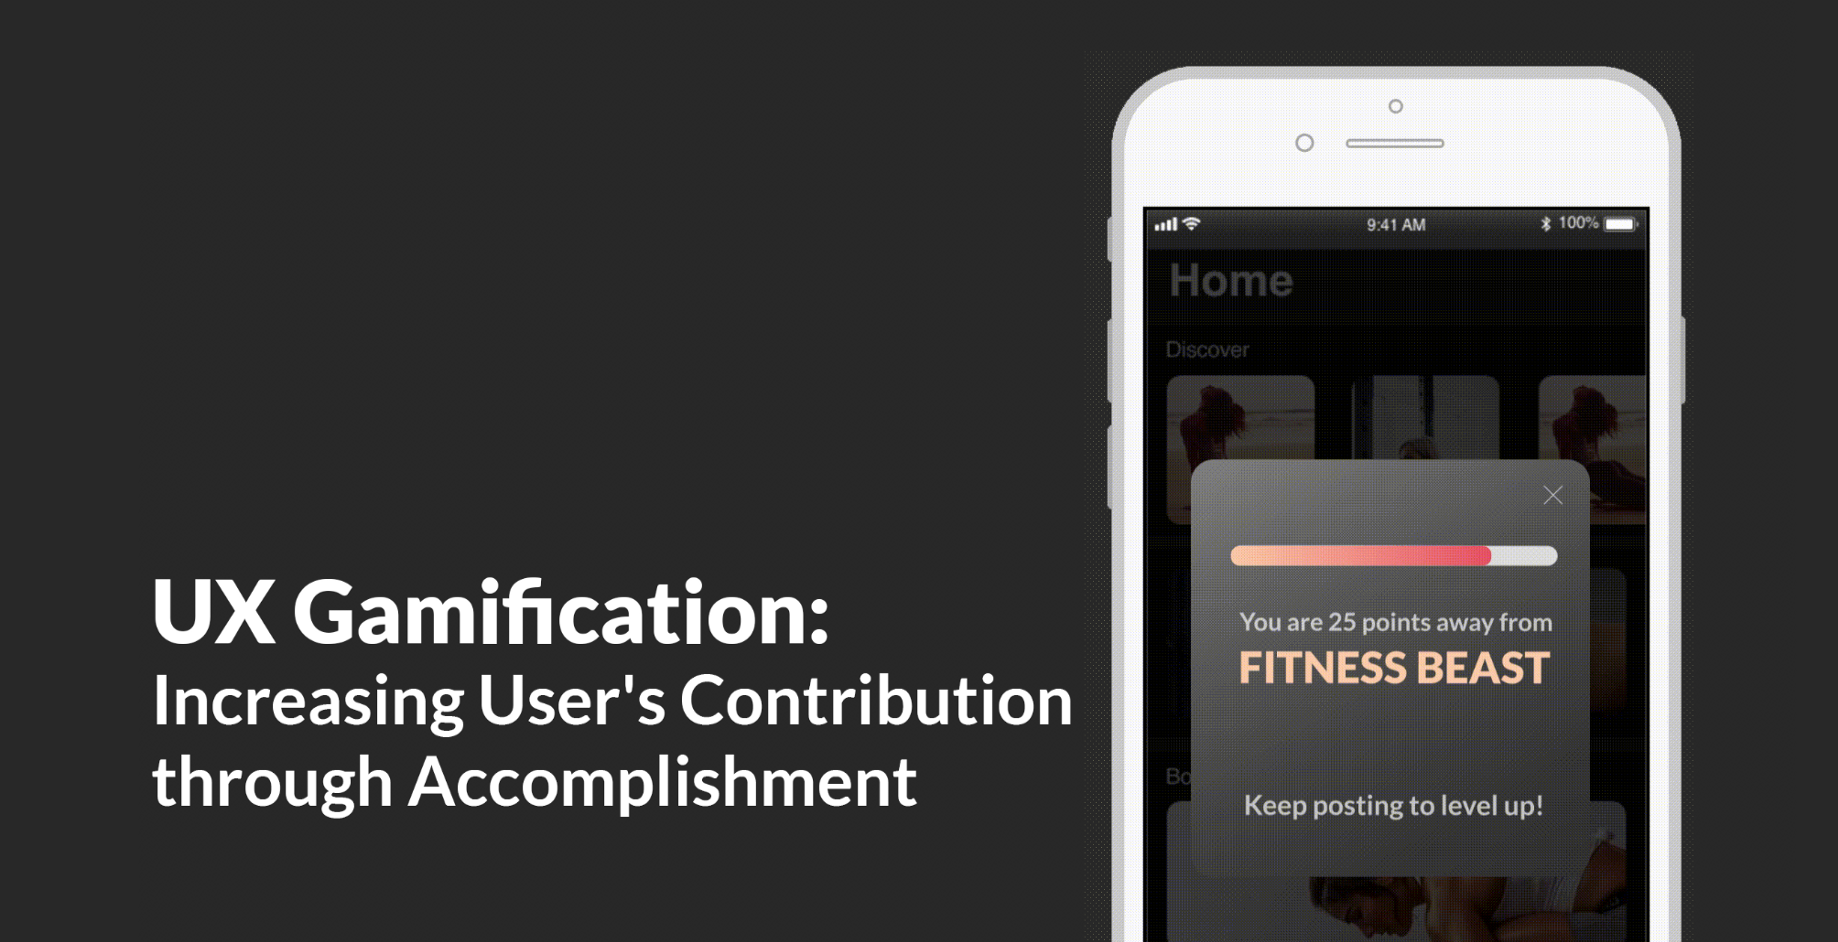 UX Gamification: Increasing User's Contribution through Accomplishment